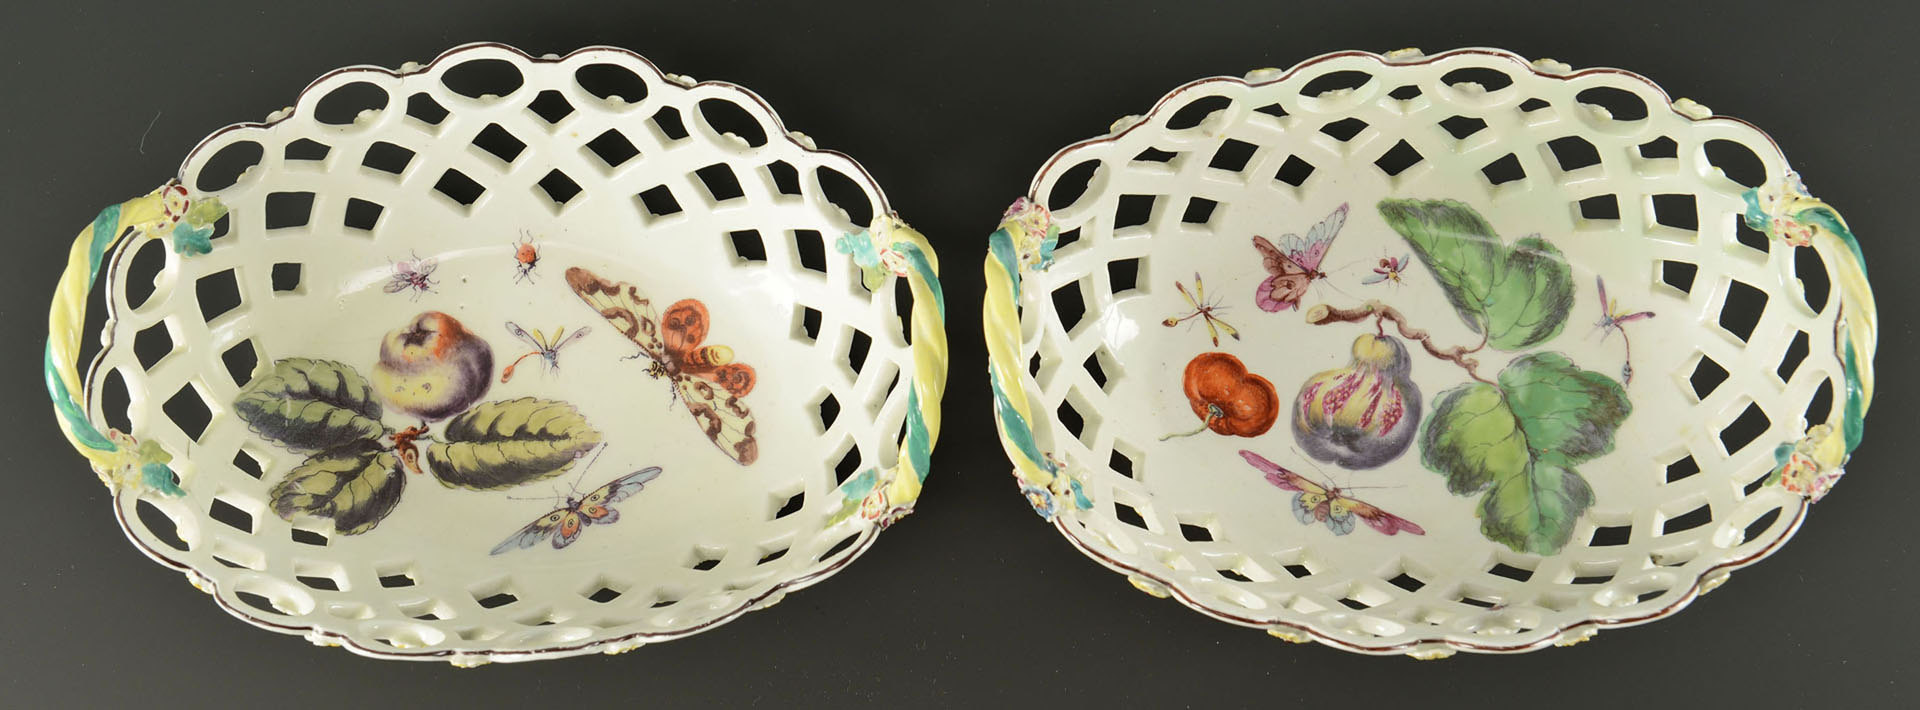 Lot 96: Pair oval porcelain baskets with insect and fruit